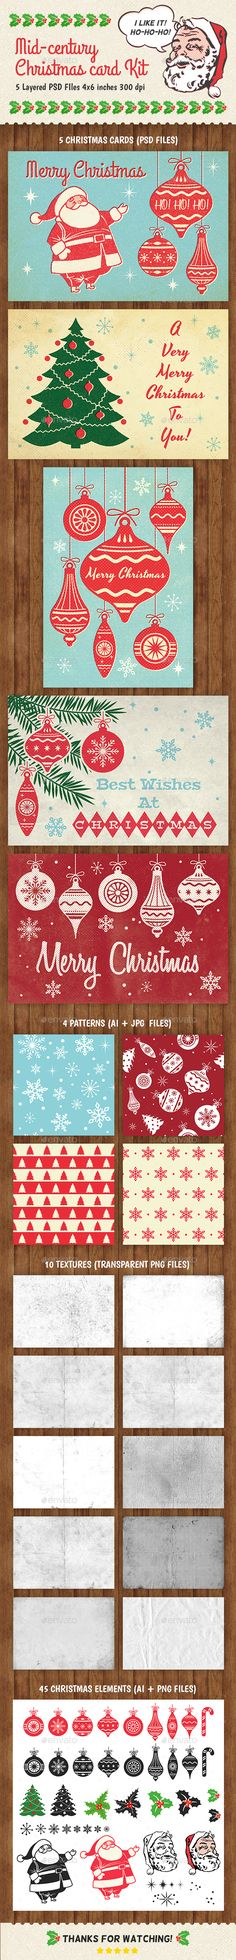 26 best best christmas templates images on pinterest christmas buy mid century christmas card kit by ottoson on graphicriver mid century christmas card kit package contains 5 layered psd files bleed all elements is reheart Image collections